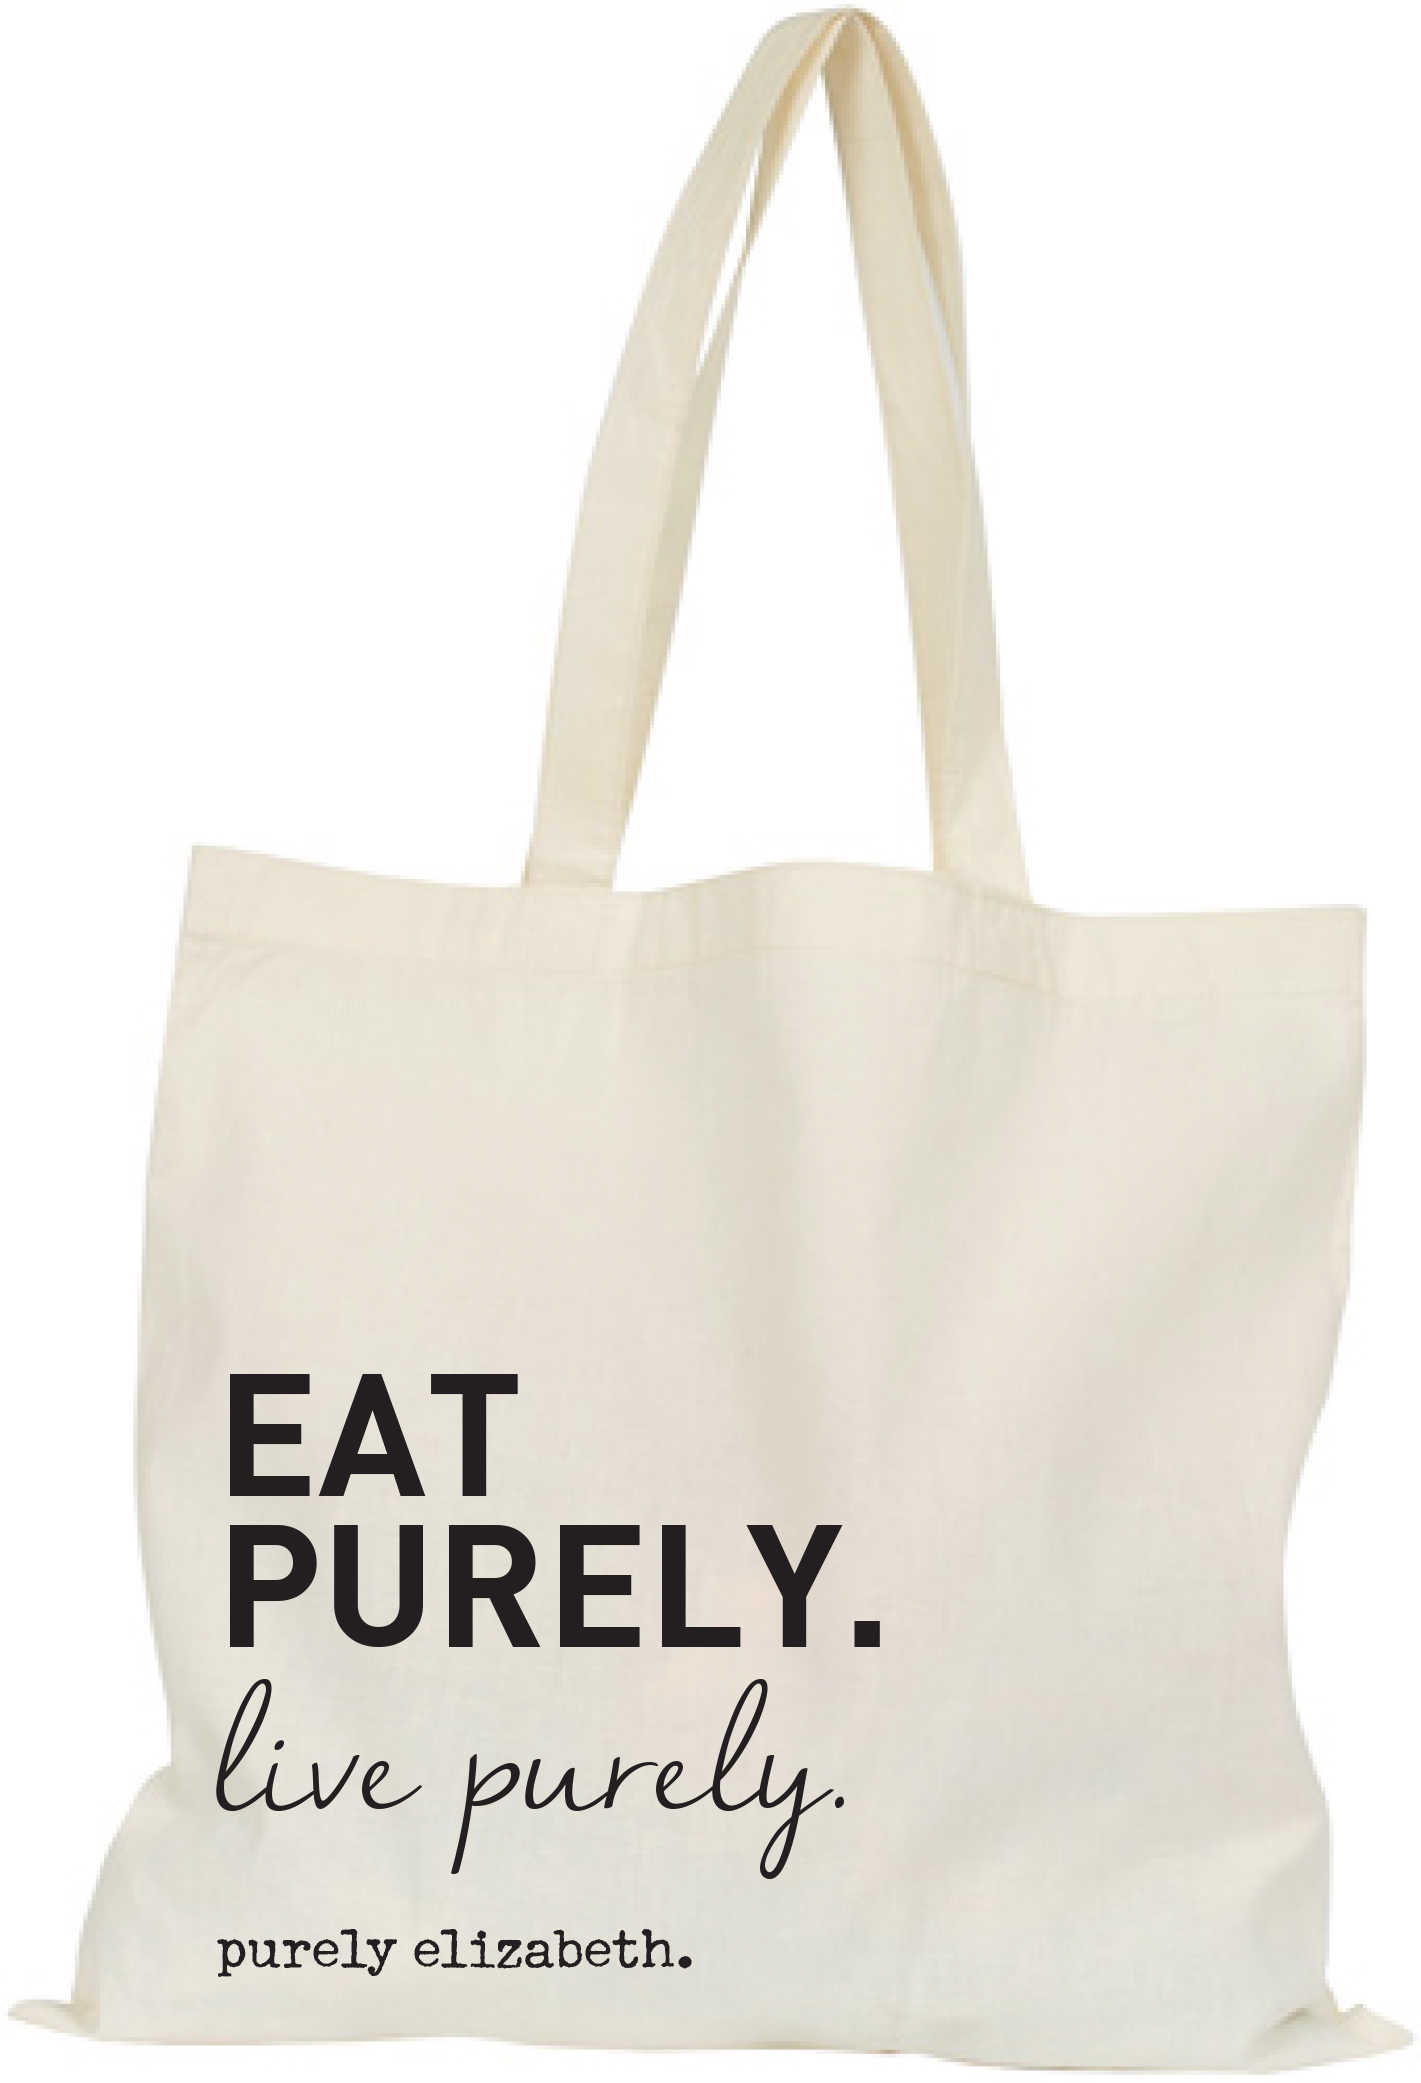 eat-purely-tote-final-2015-1